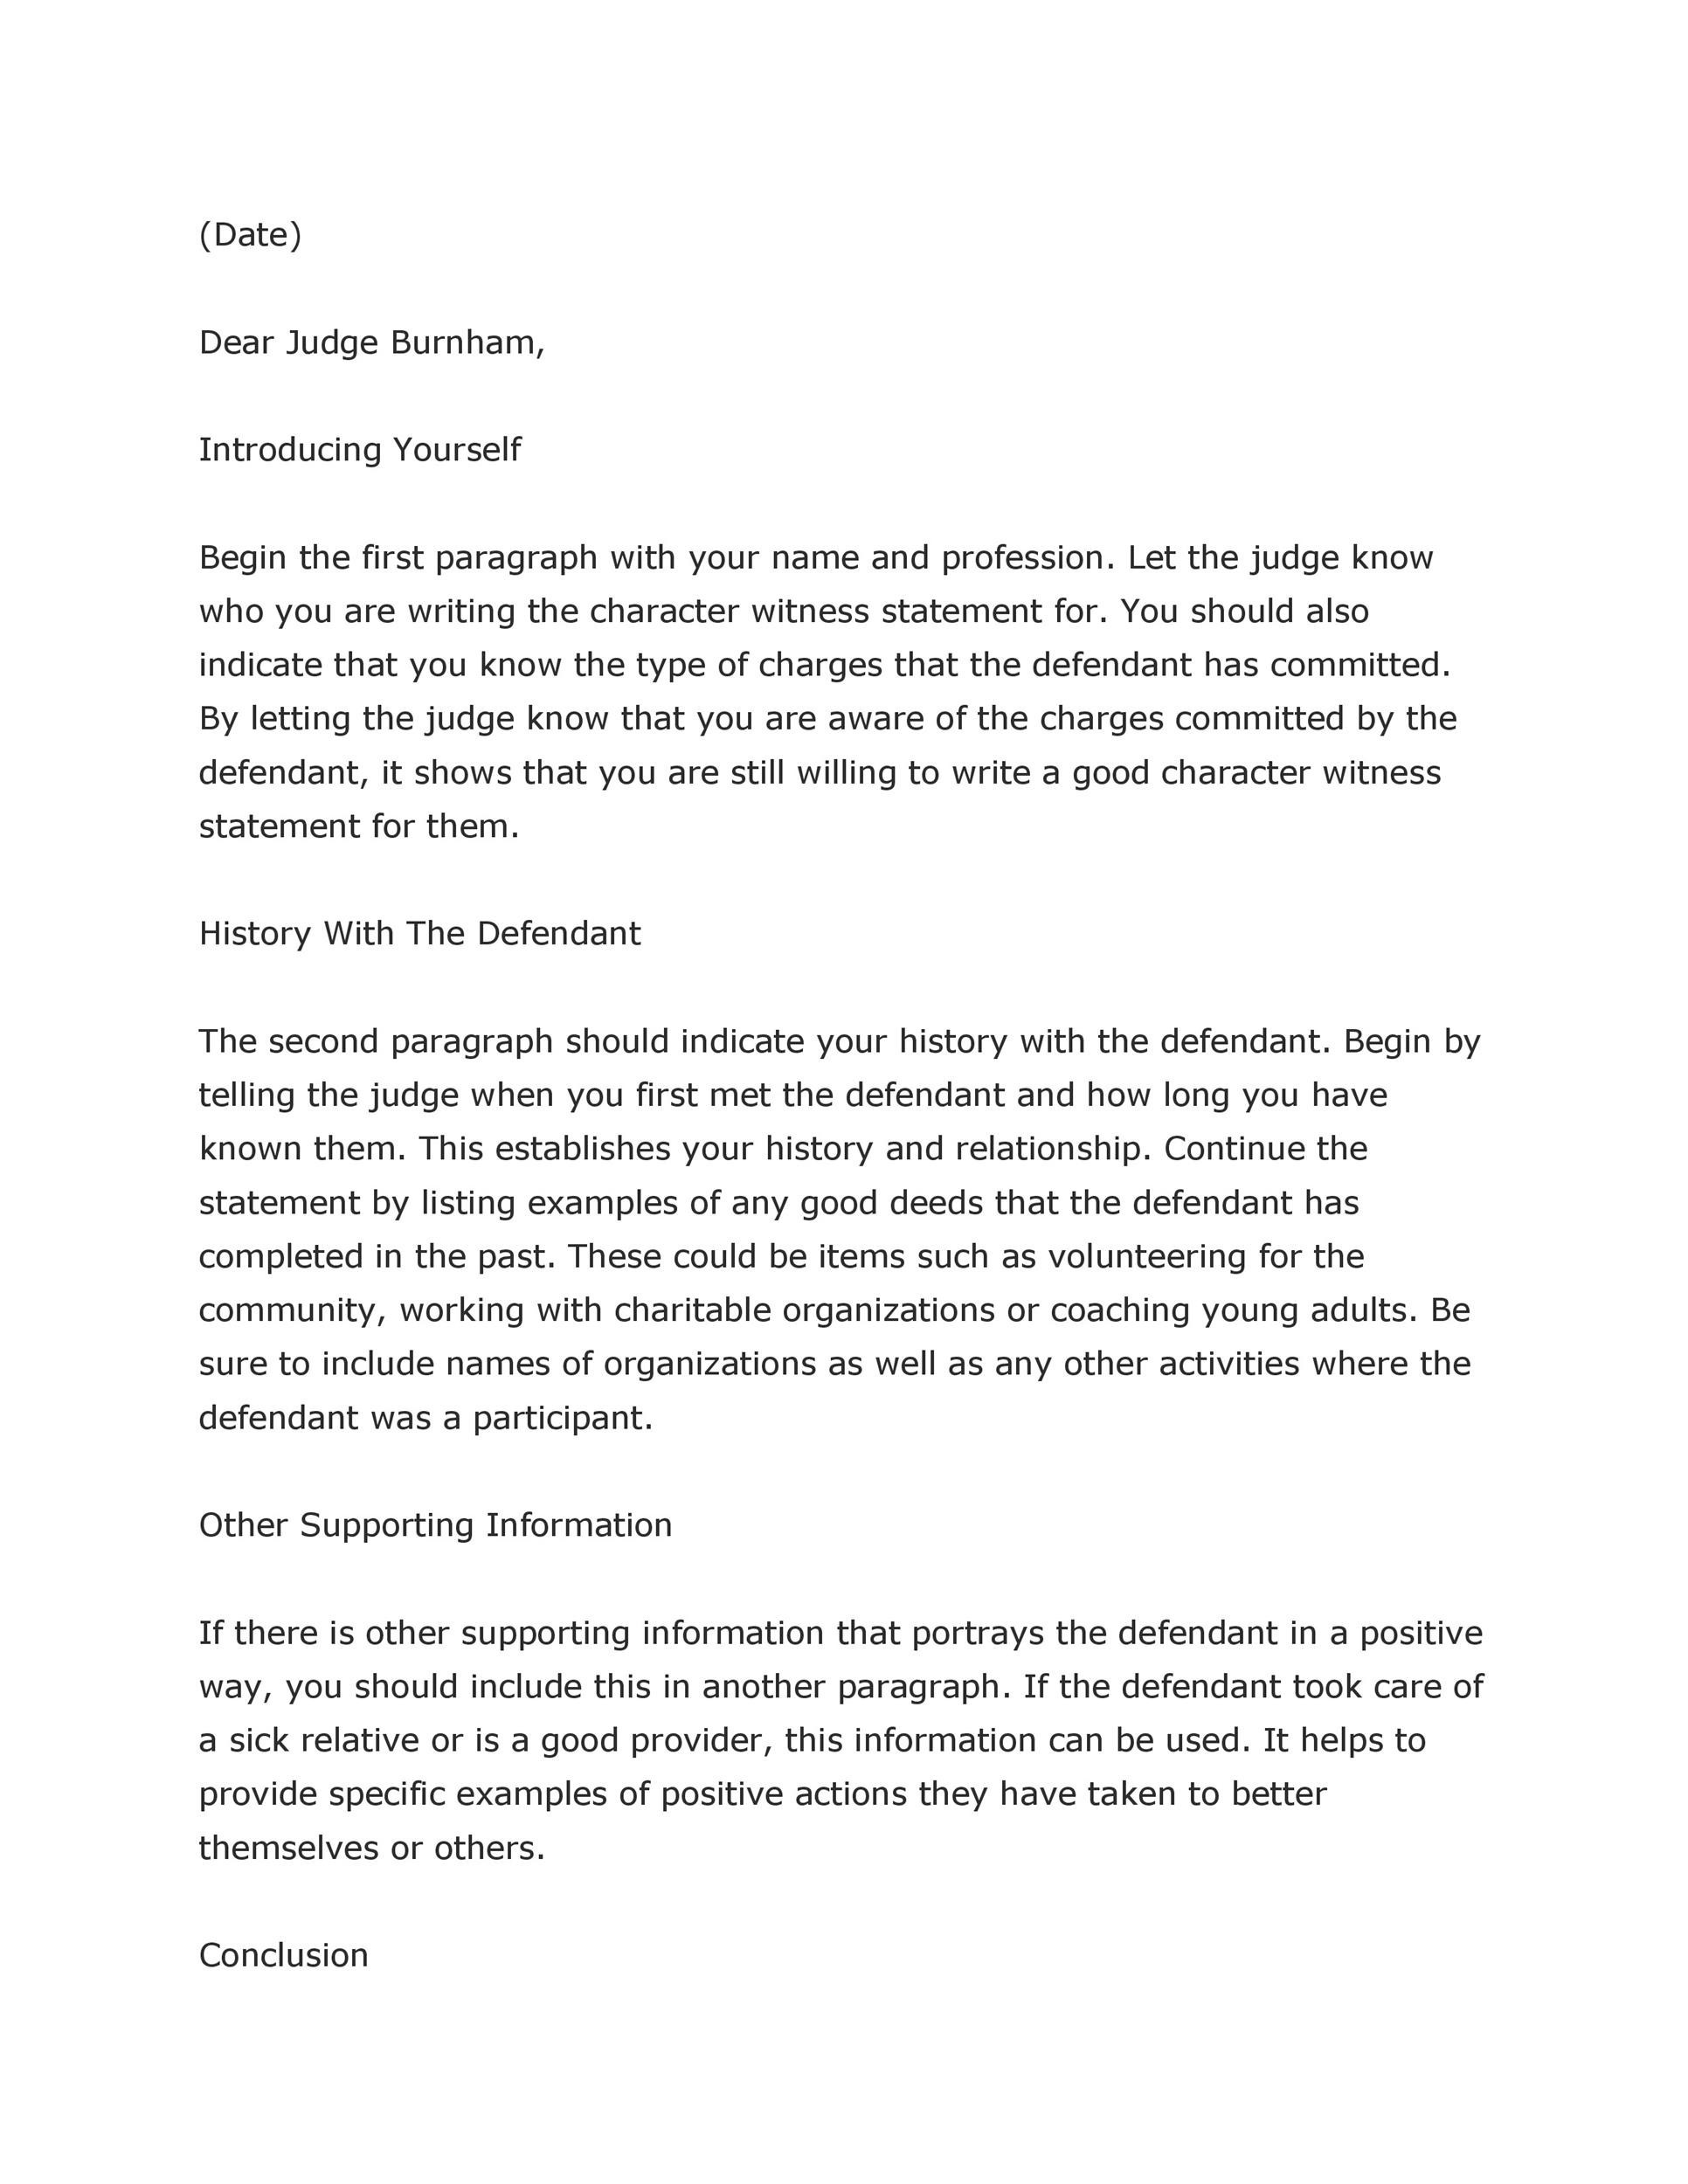 Sample Support Letter For Inmate from templatelab.com